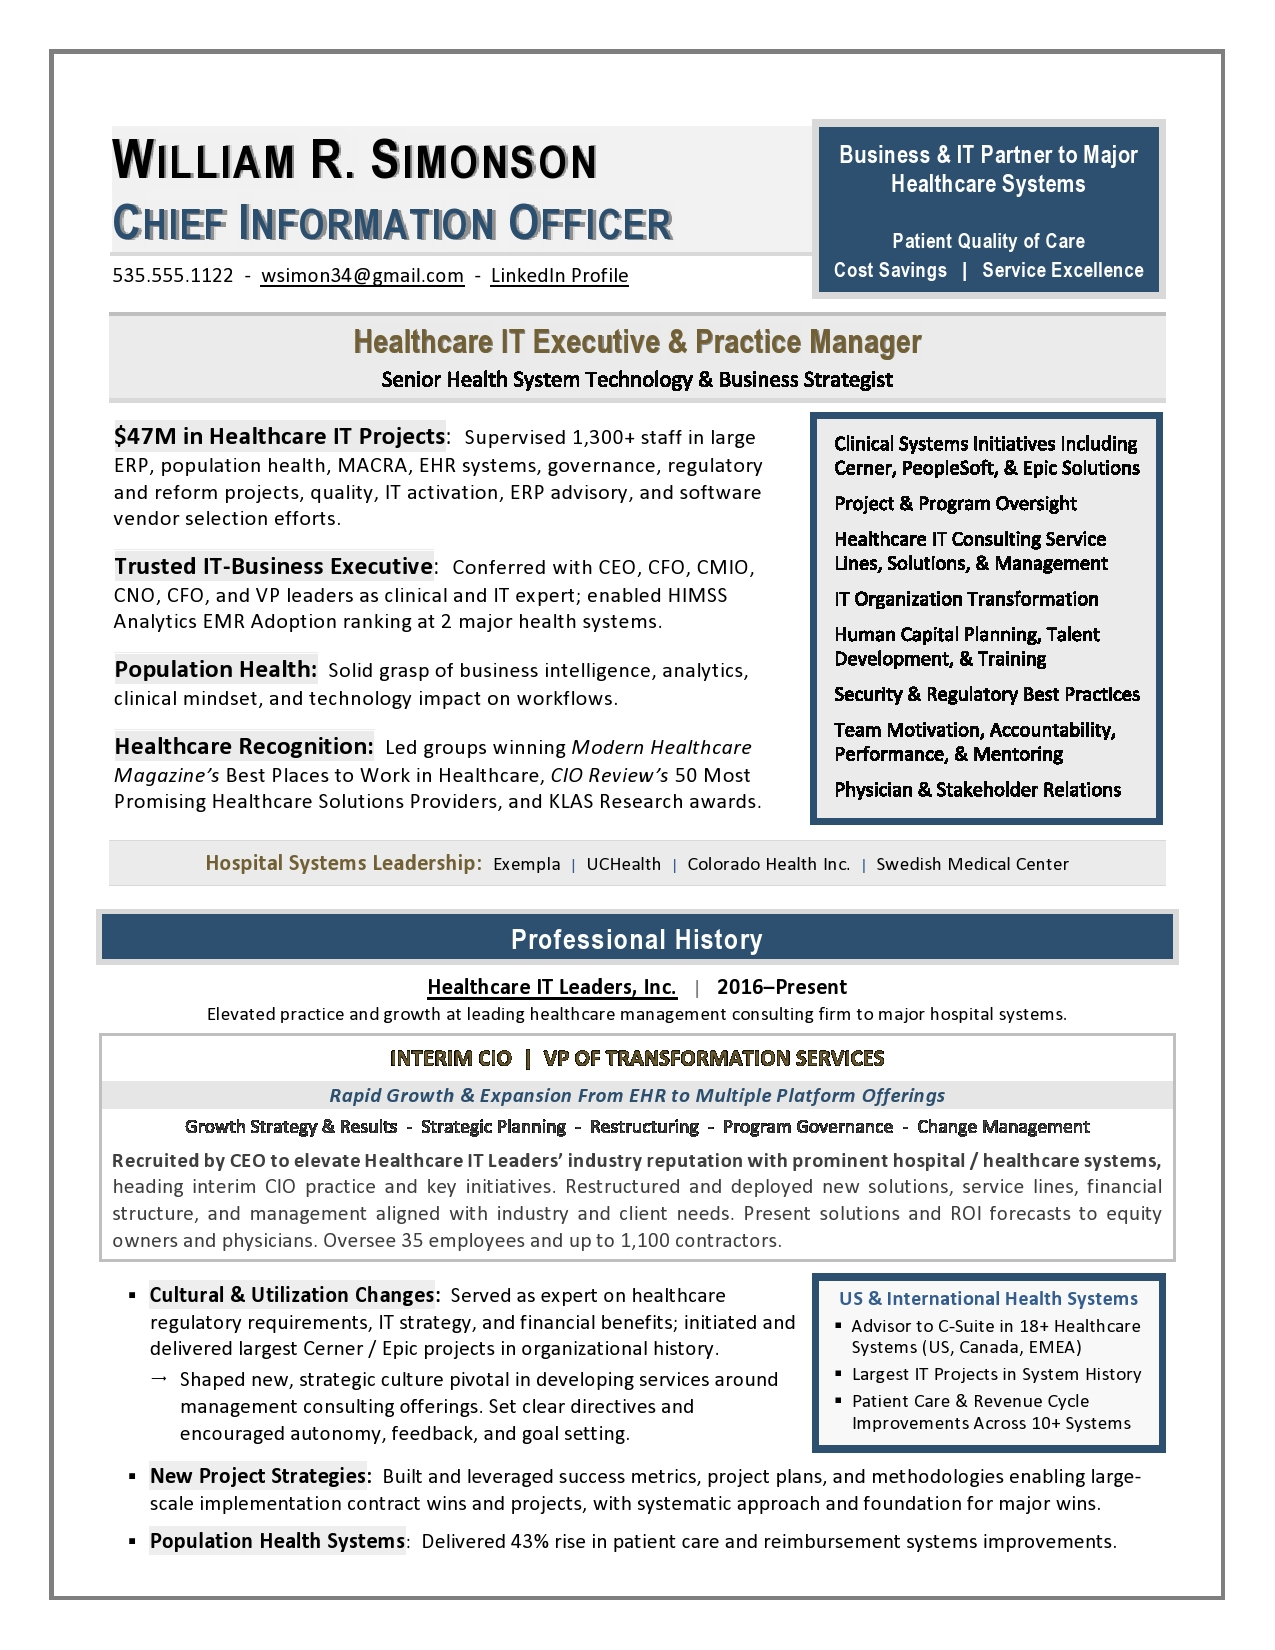 executive resume writing service nyc free services management healthcare it cio sample Resume Management Resume Writing Services